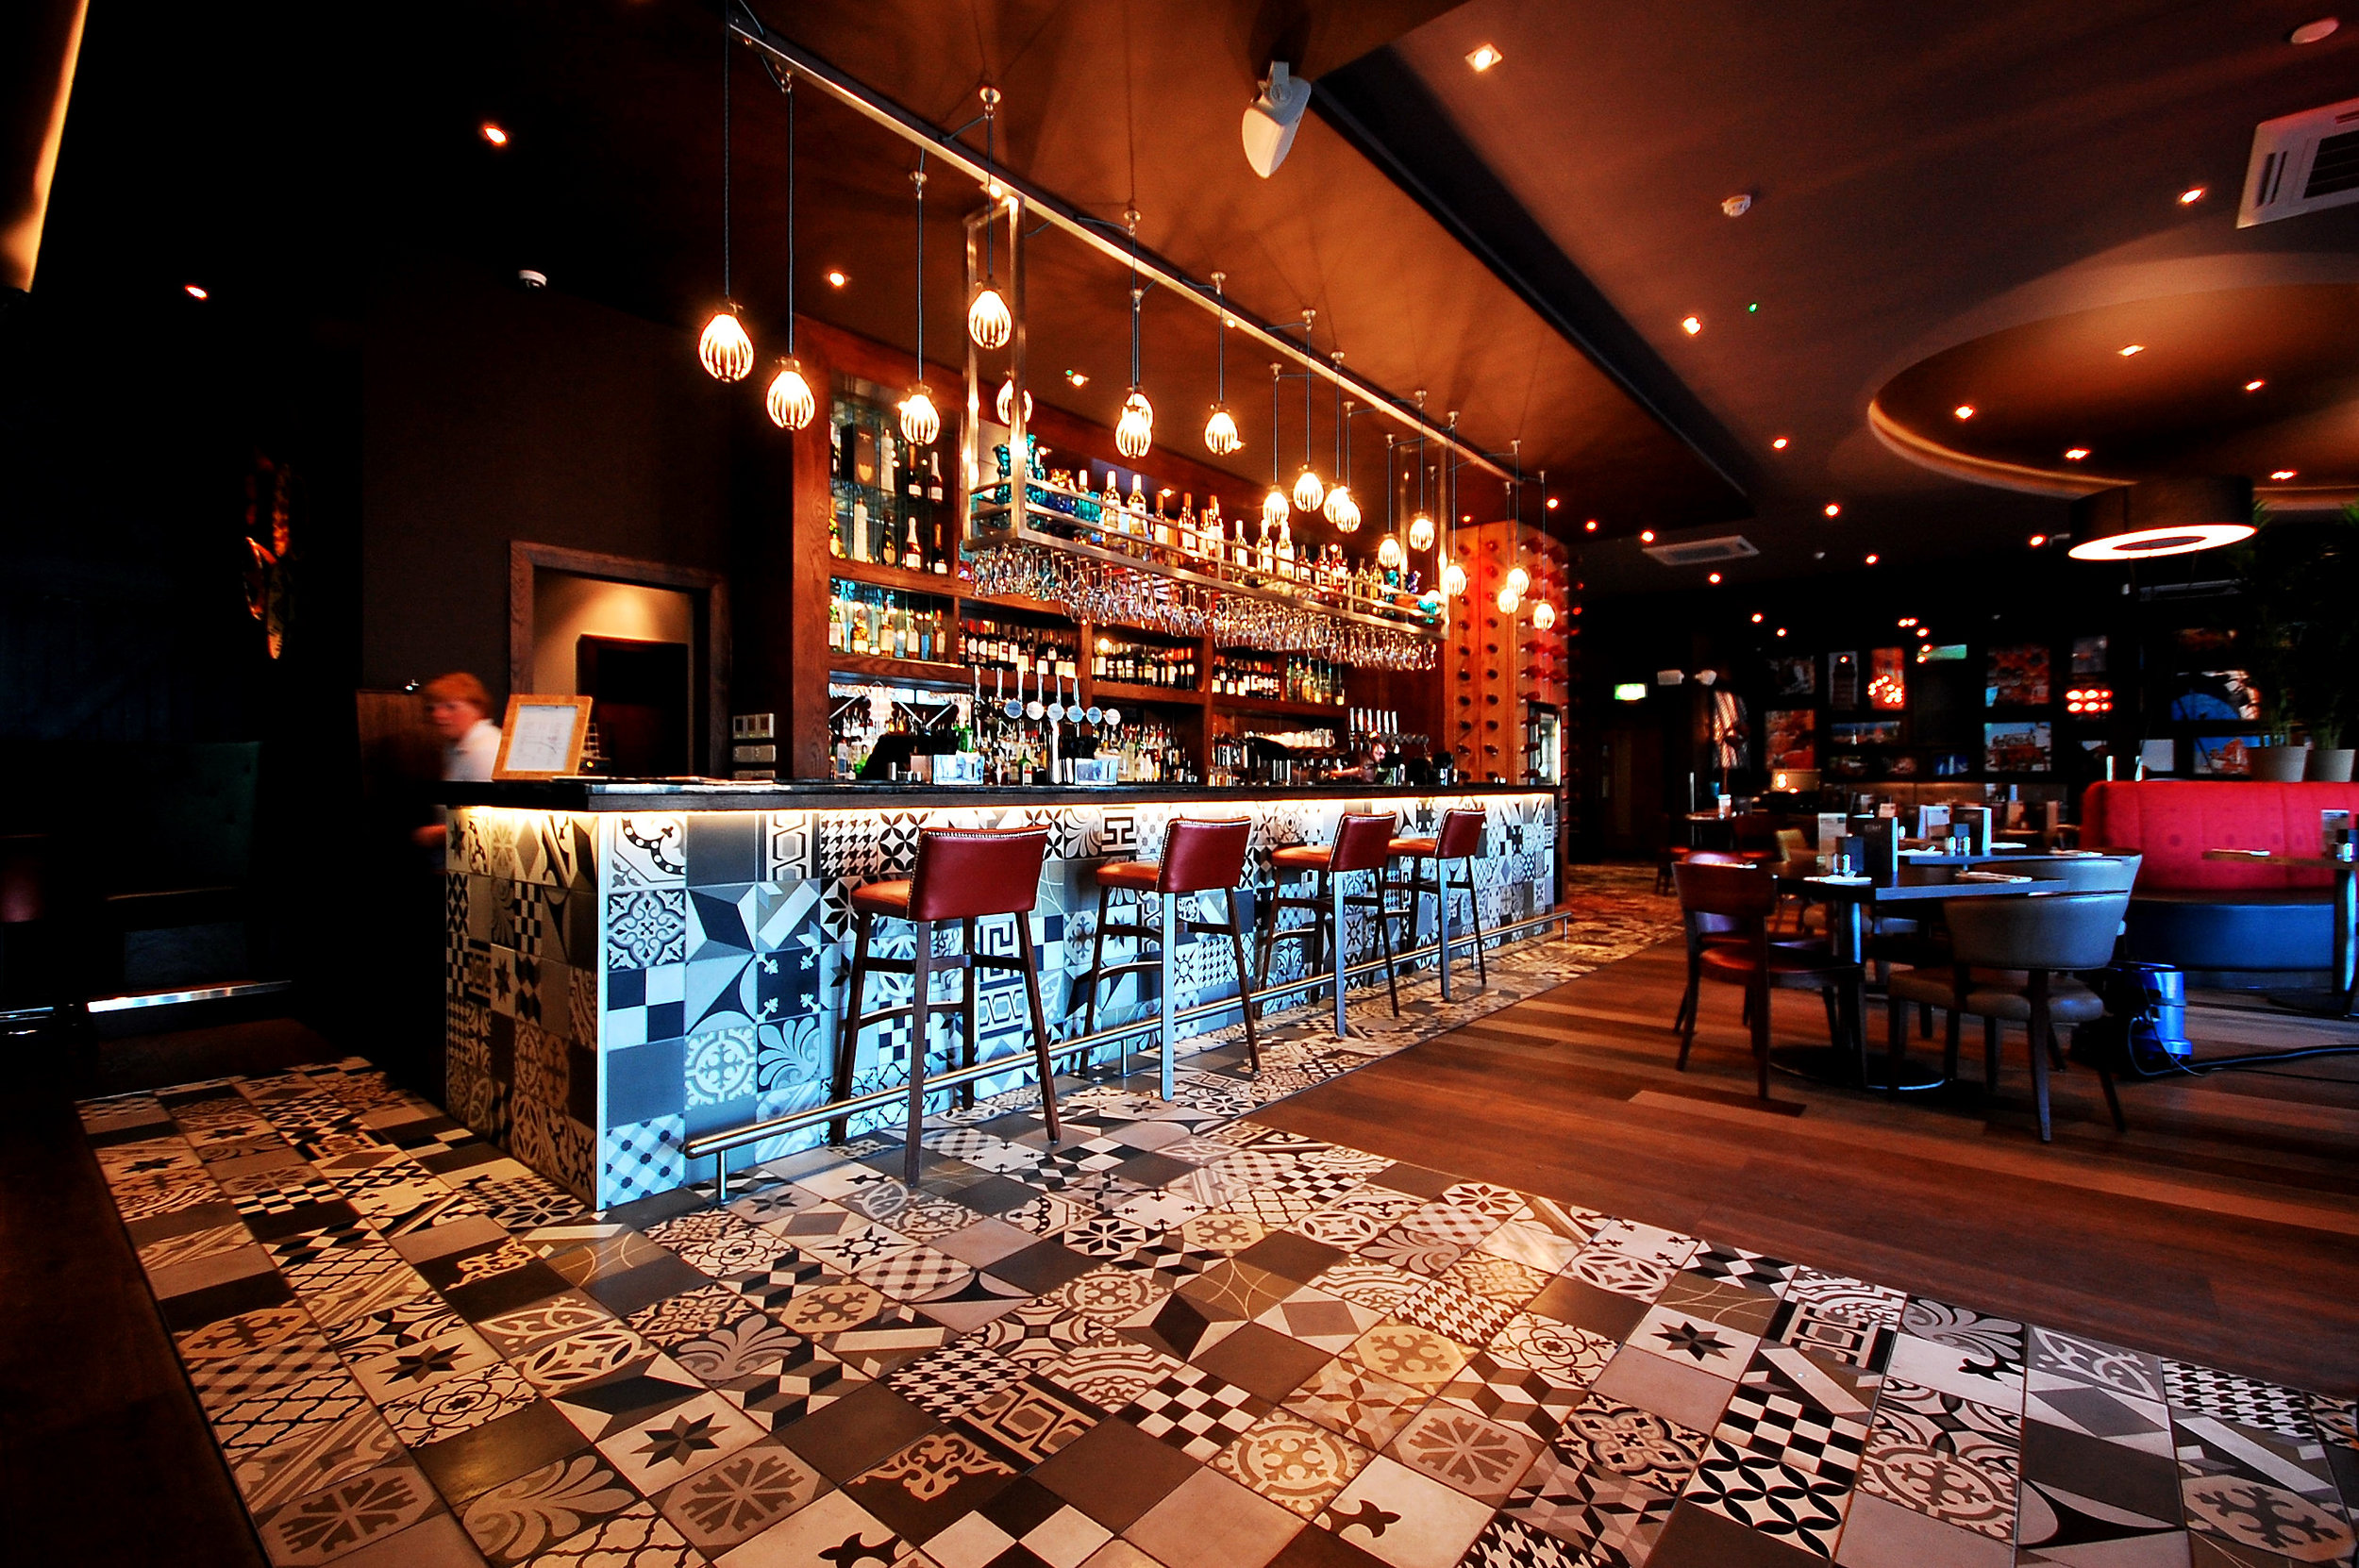 Si Bar, near Glasgow - Black and White encaustic tiles in entrance and on bar front of this bar in Scotland.